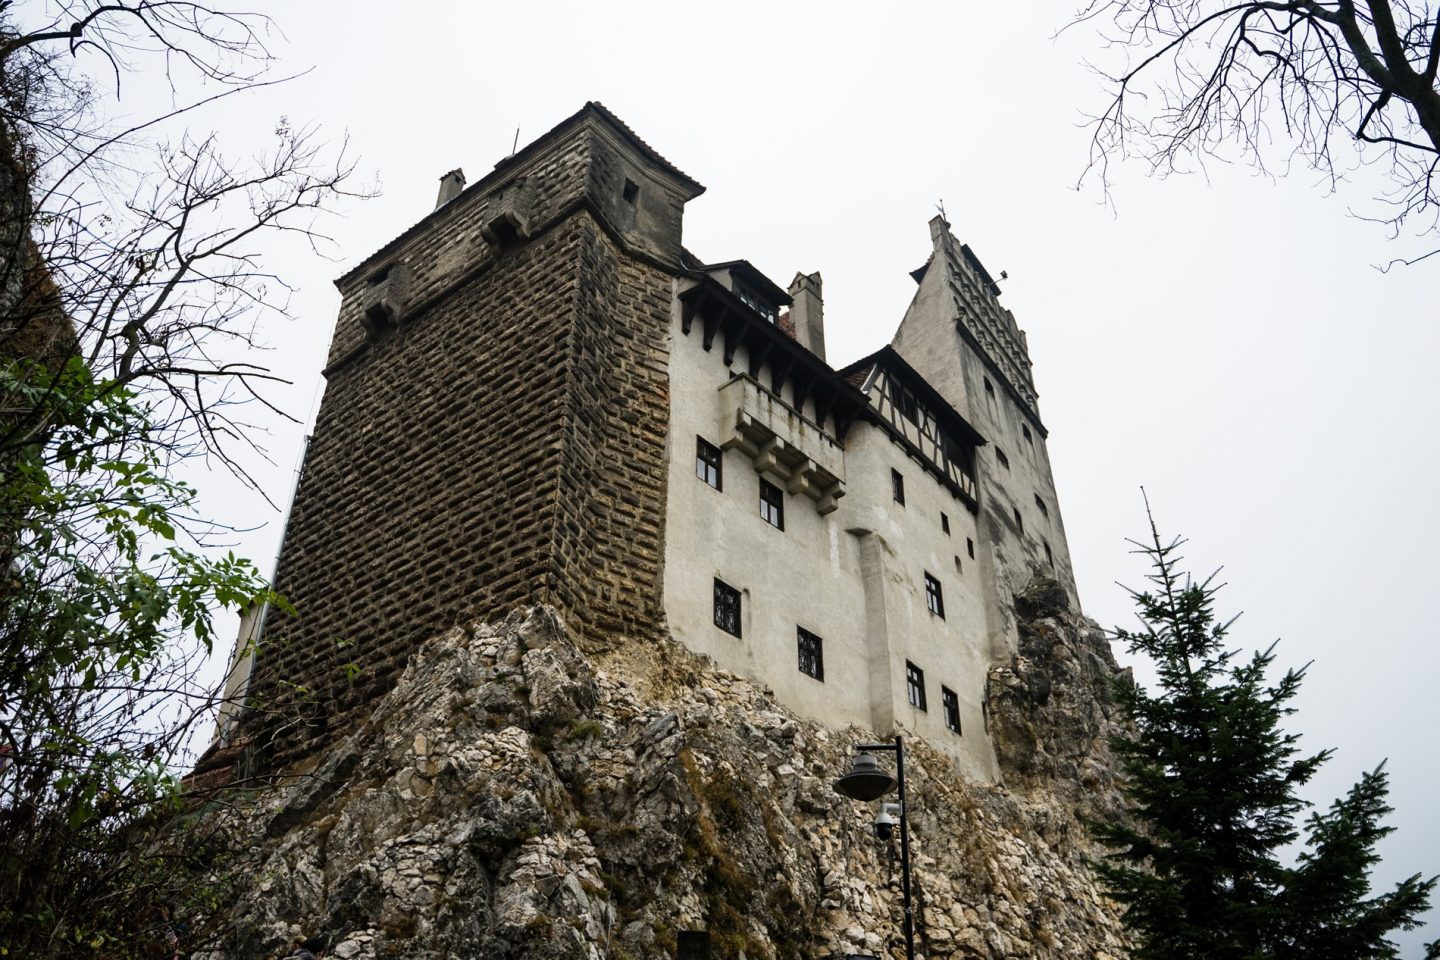 Bran Castle in Transylvania has to be one of the spookiest places in Europe